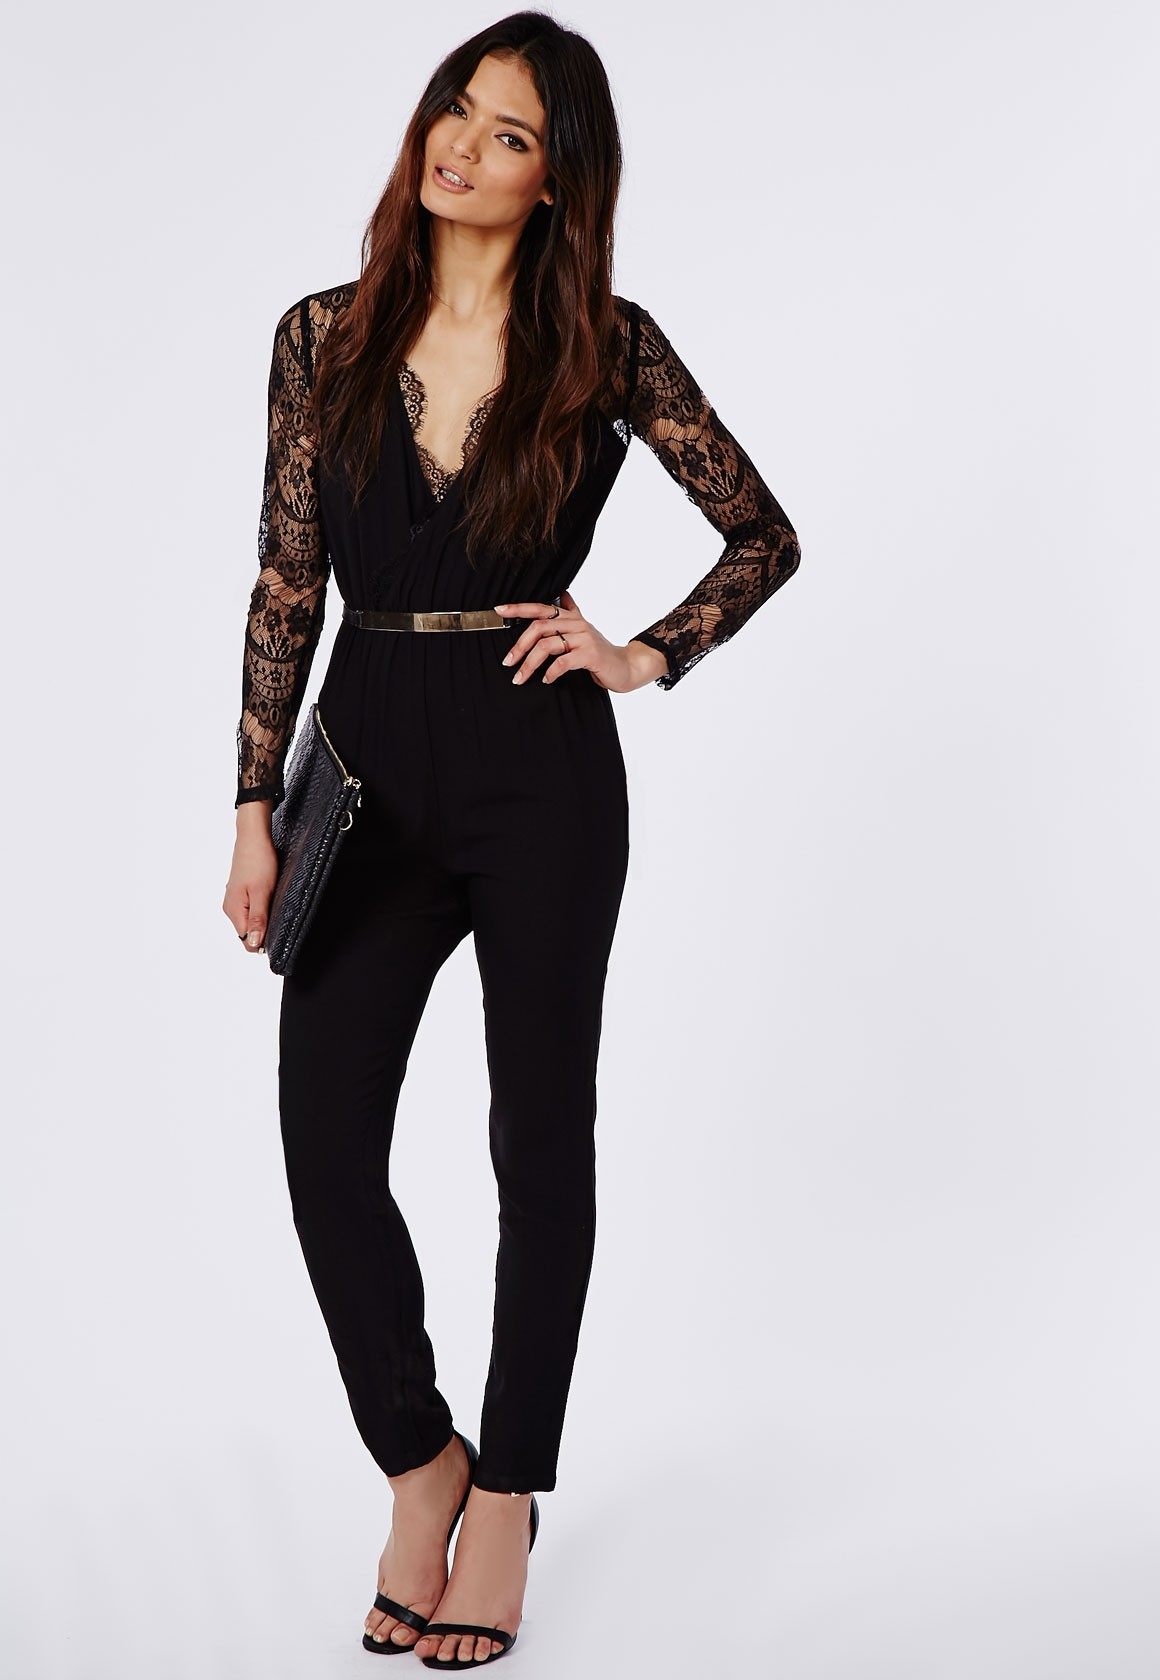 How to Wear Black Lace Jumpsuit – careyfashion.com